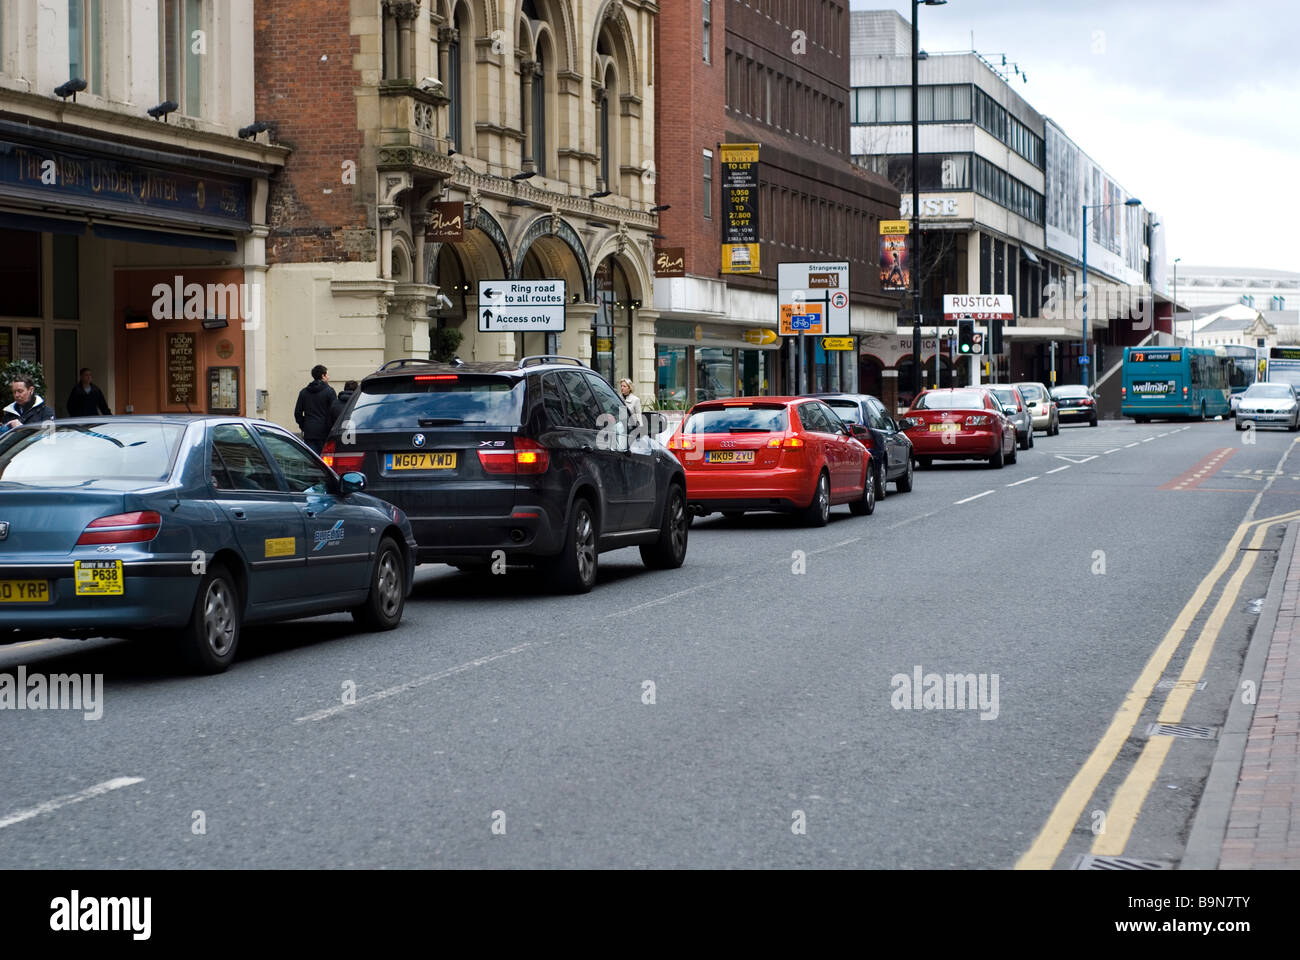 Traffic on Deansgate Manchester city centre UK - Stock Image